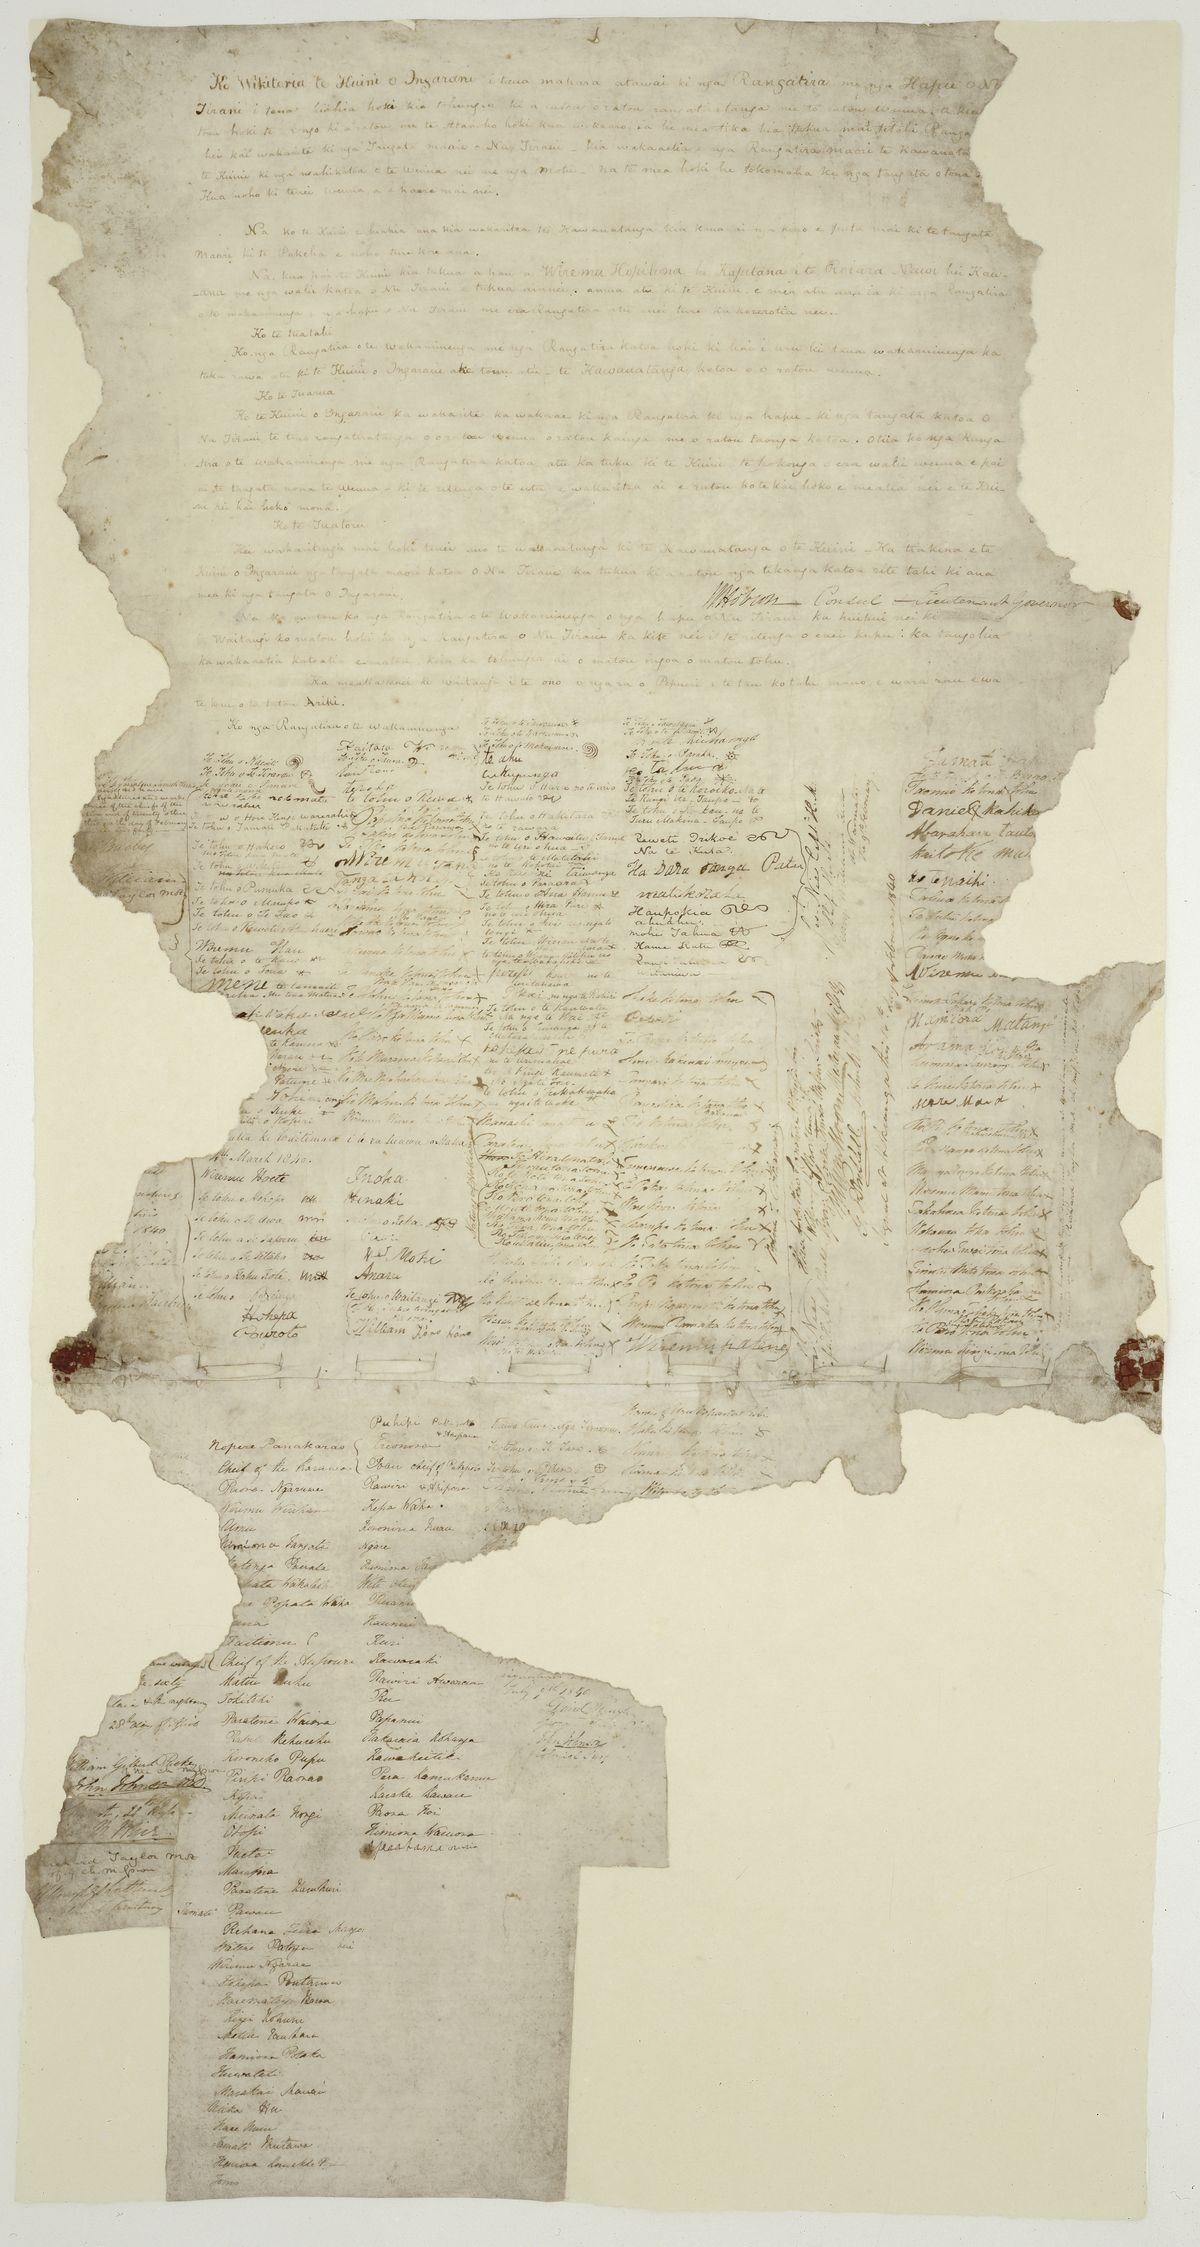 The Treaty of Waitangi, signed by the British Crown and various Māori chiefs